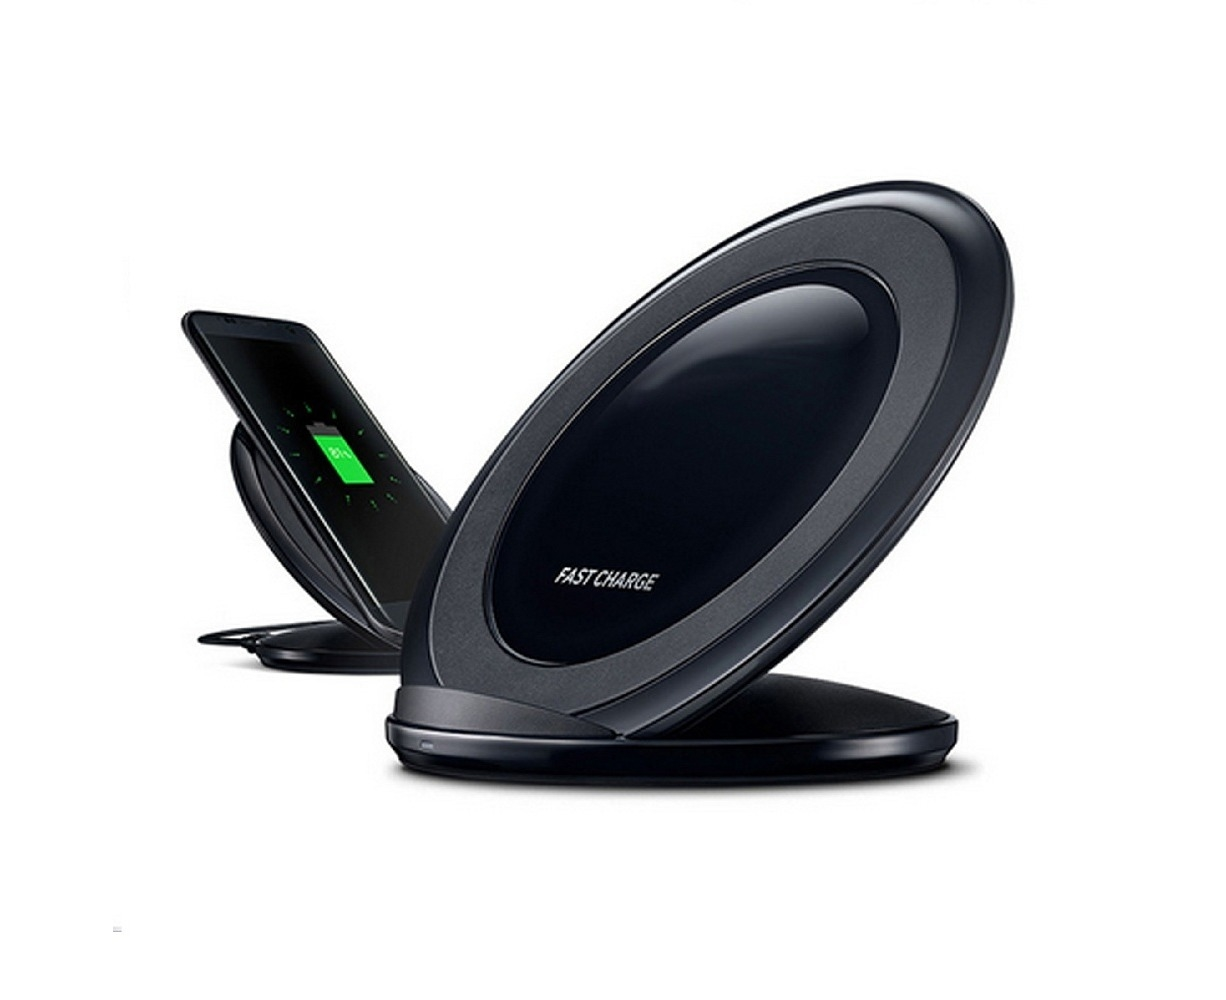 Smart Samsung Wireless Fast Charging Stand Dock For Galaxy S6/S7 & Edge/Note 5/7/S8/S8+ by Catch